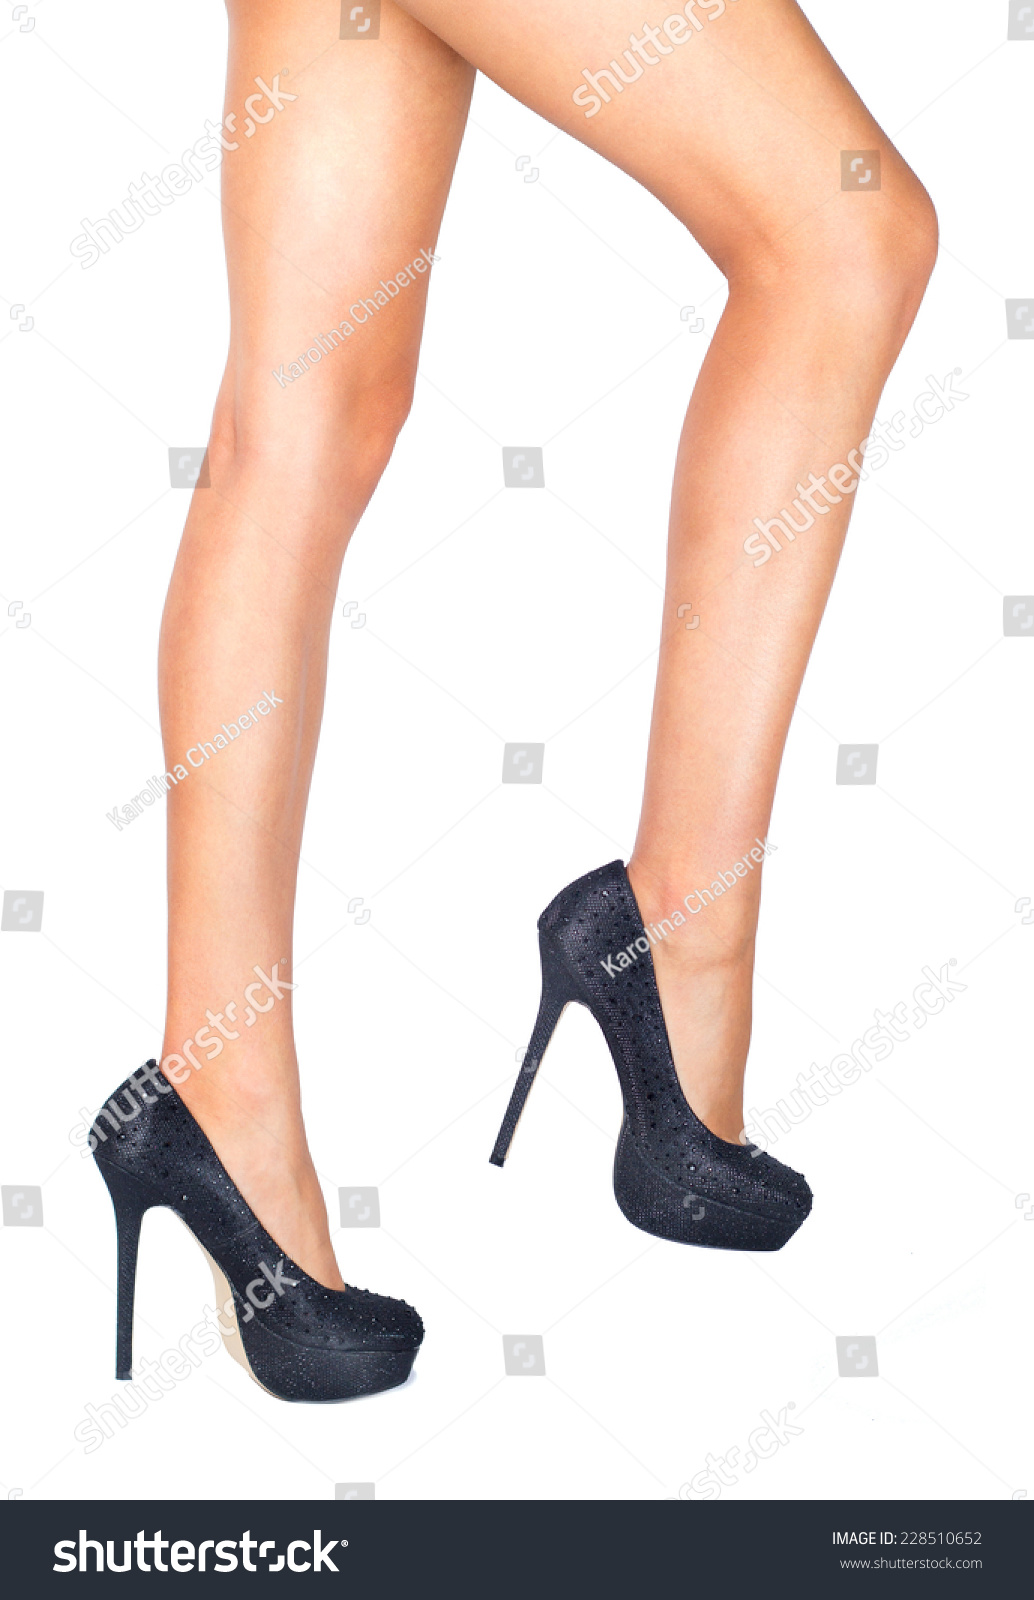 dcb18bfec6c23b Tanned legs isolated high heels stock photo edit now jpg 1034x1600 Tanned  heels